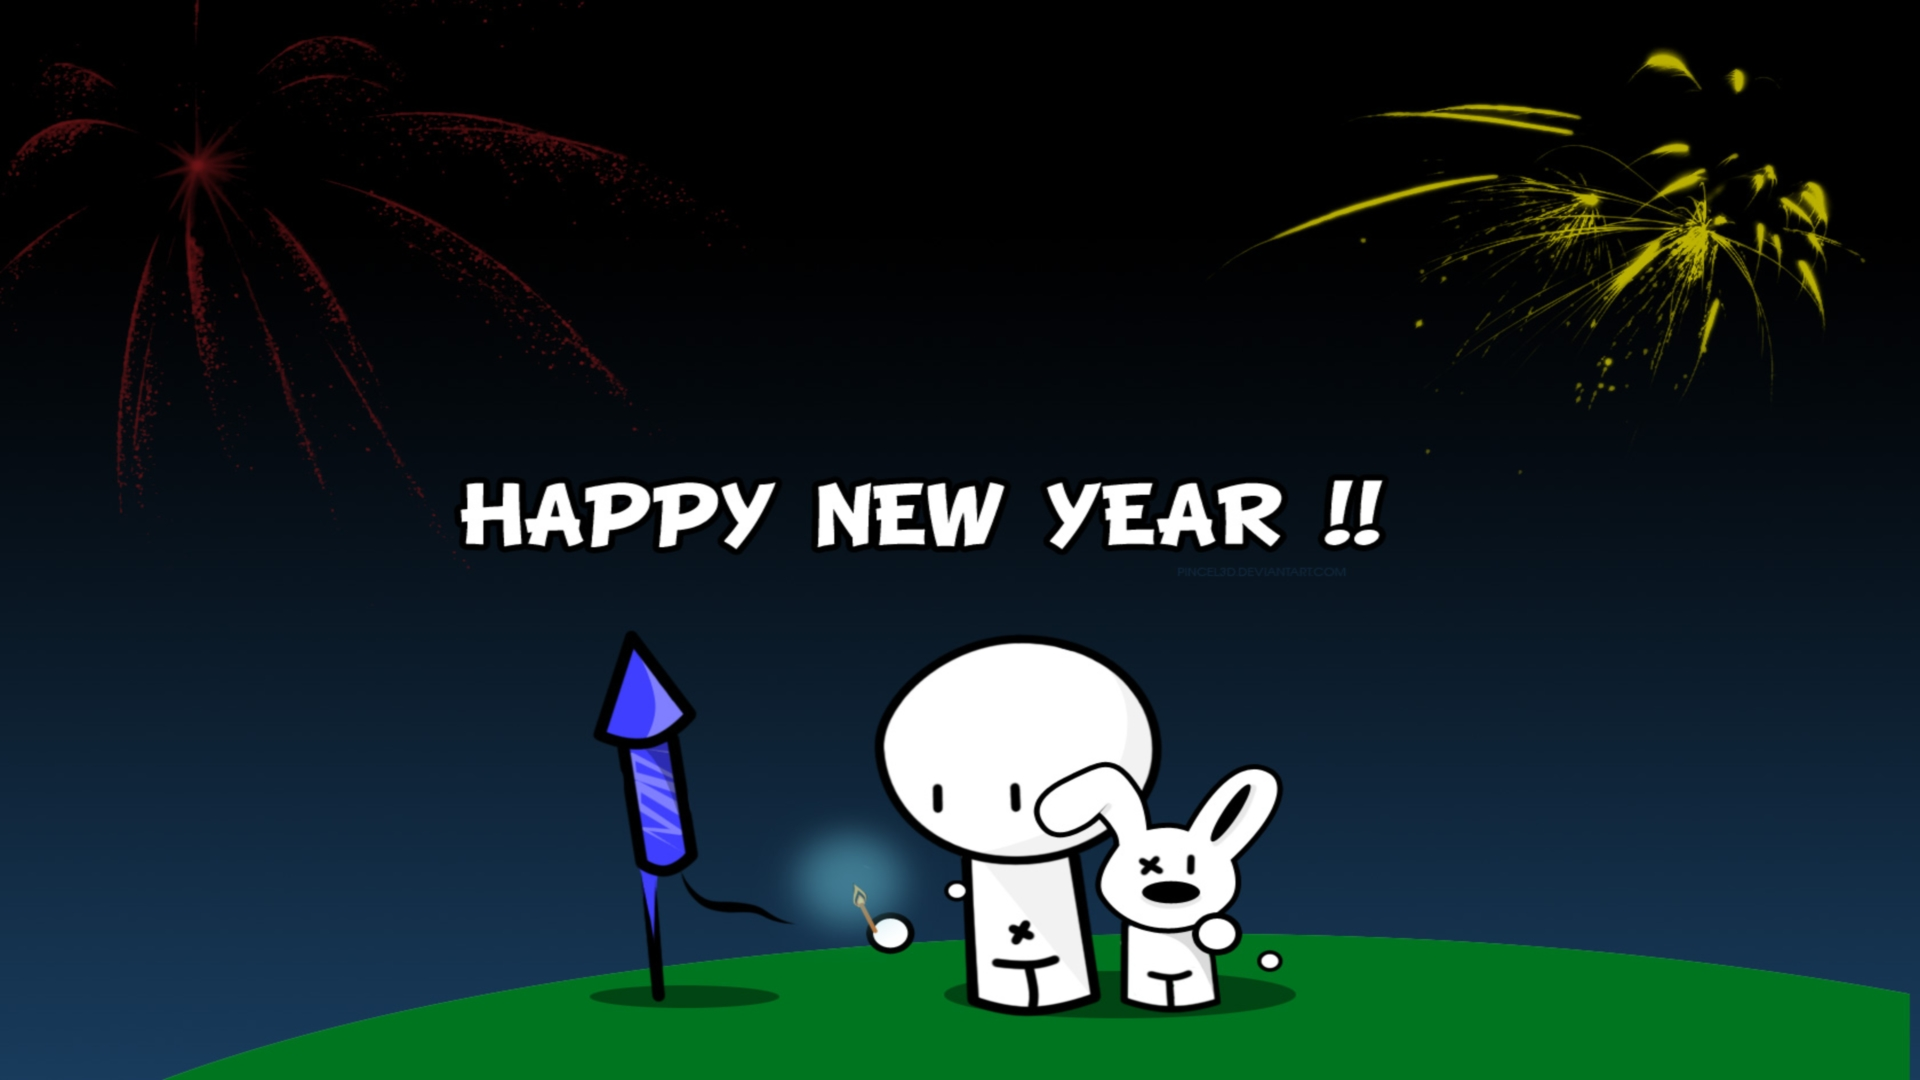 new year 2014 hd - wallpaper, high definition, high quality, widescreen